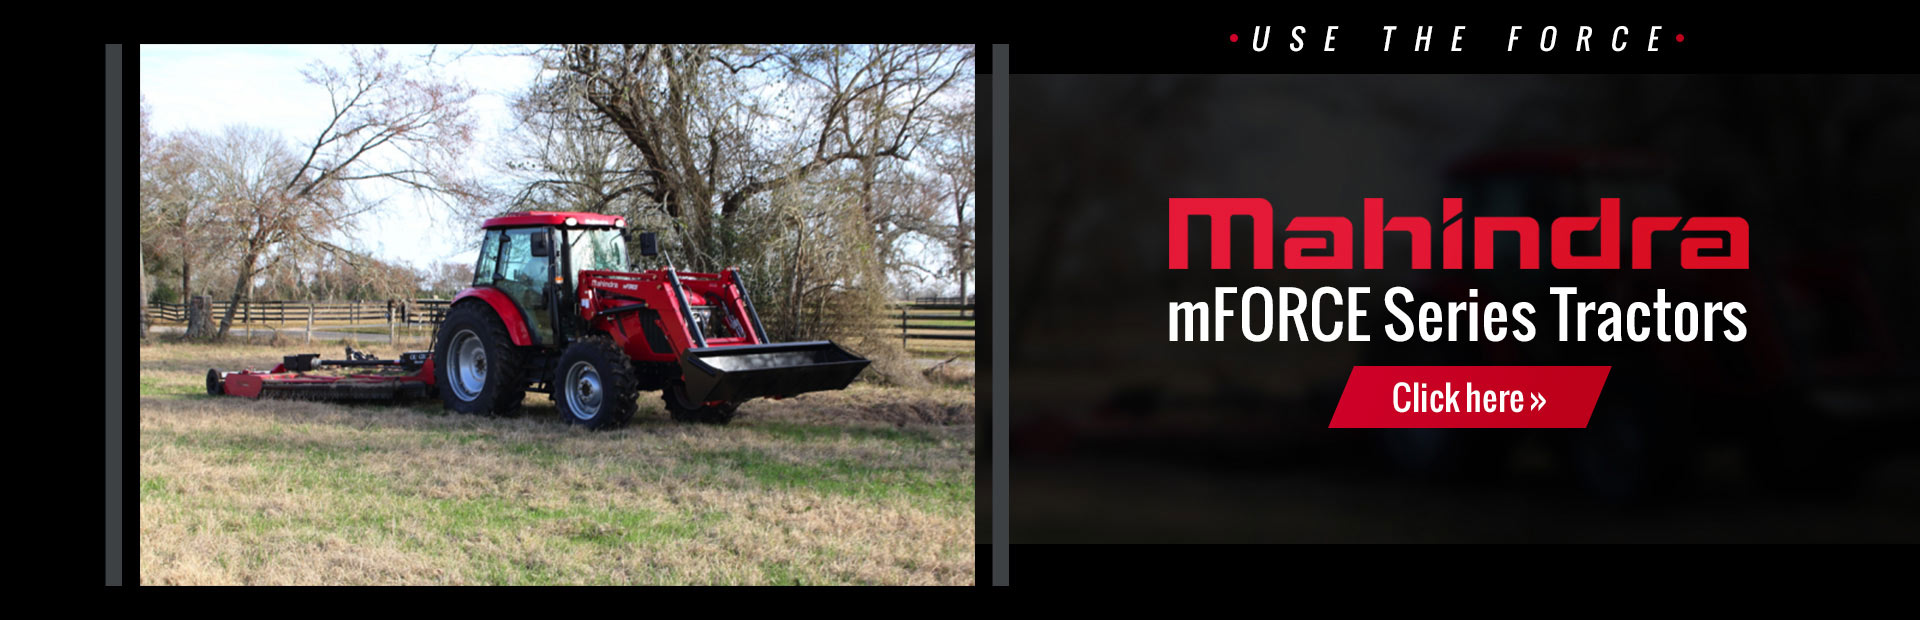 Click here to view our selection of Mahindra mFORCE series tractors!